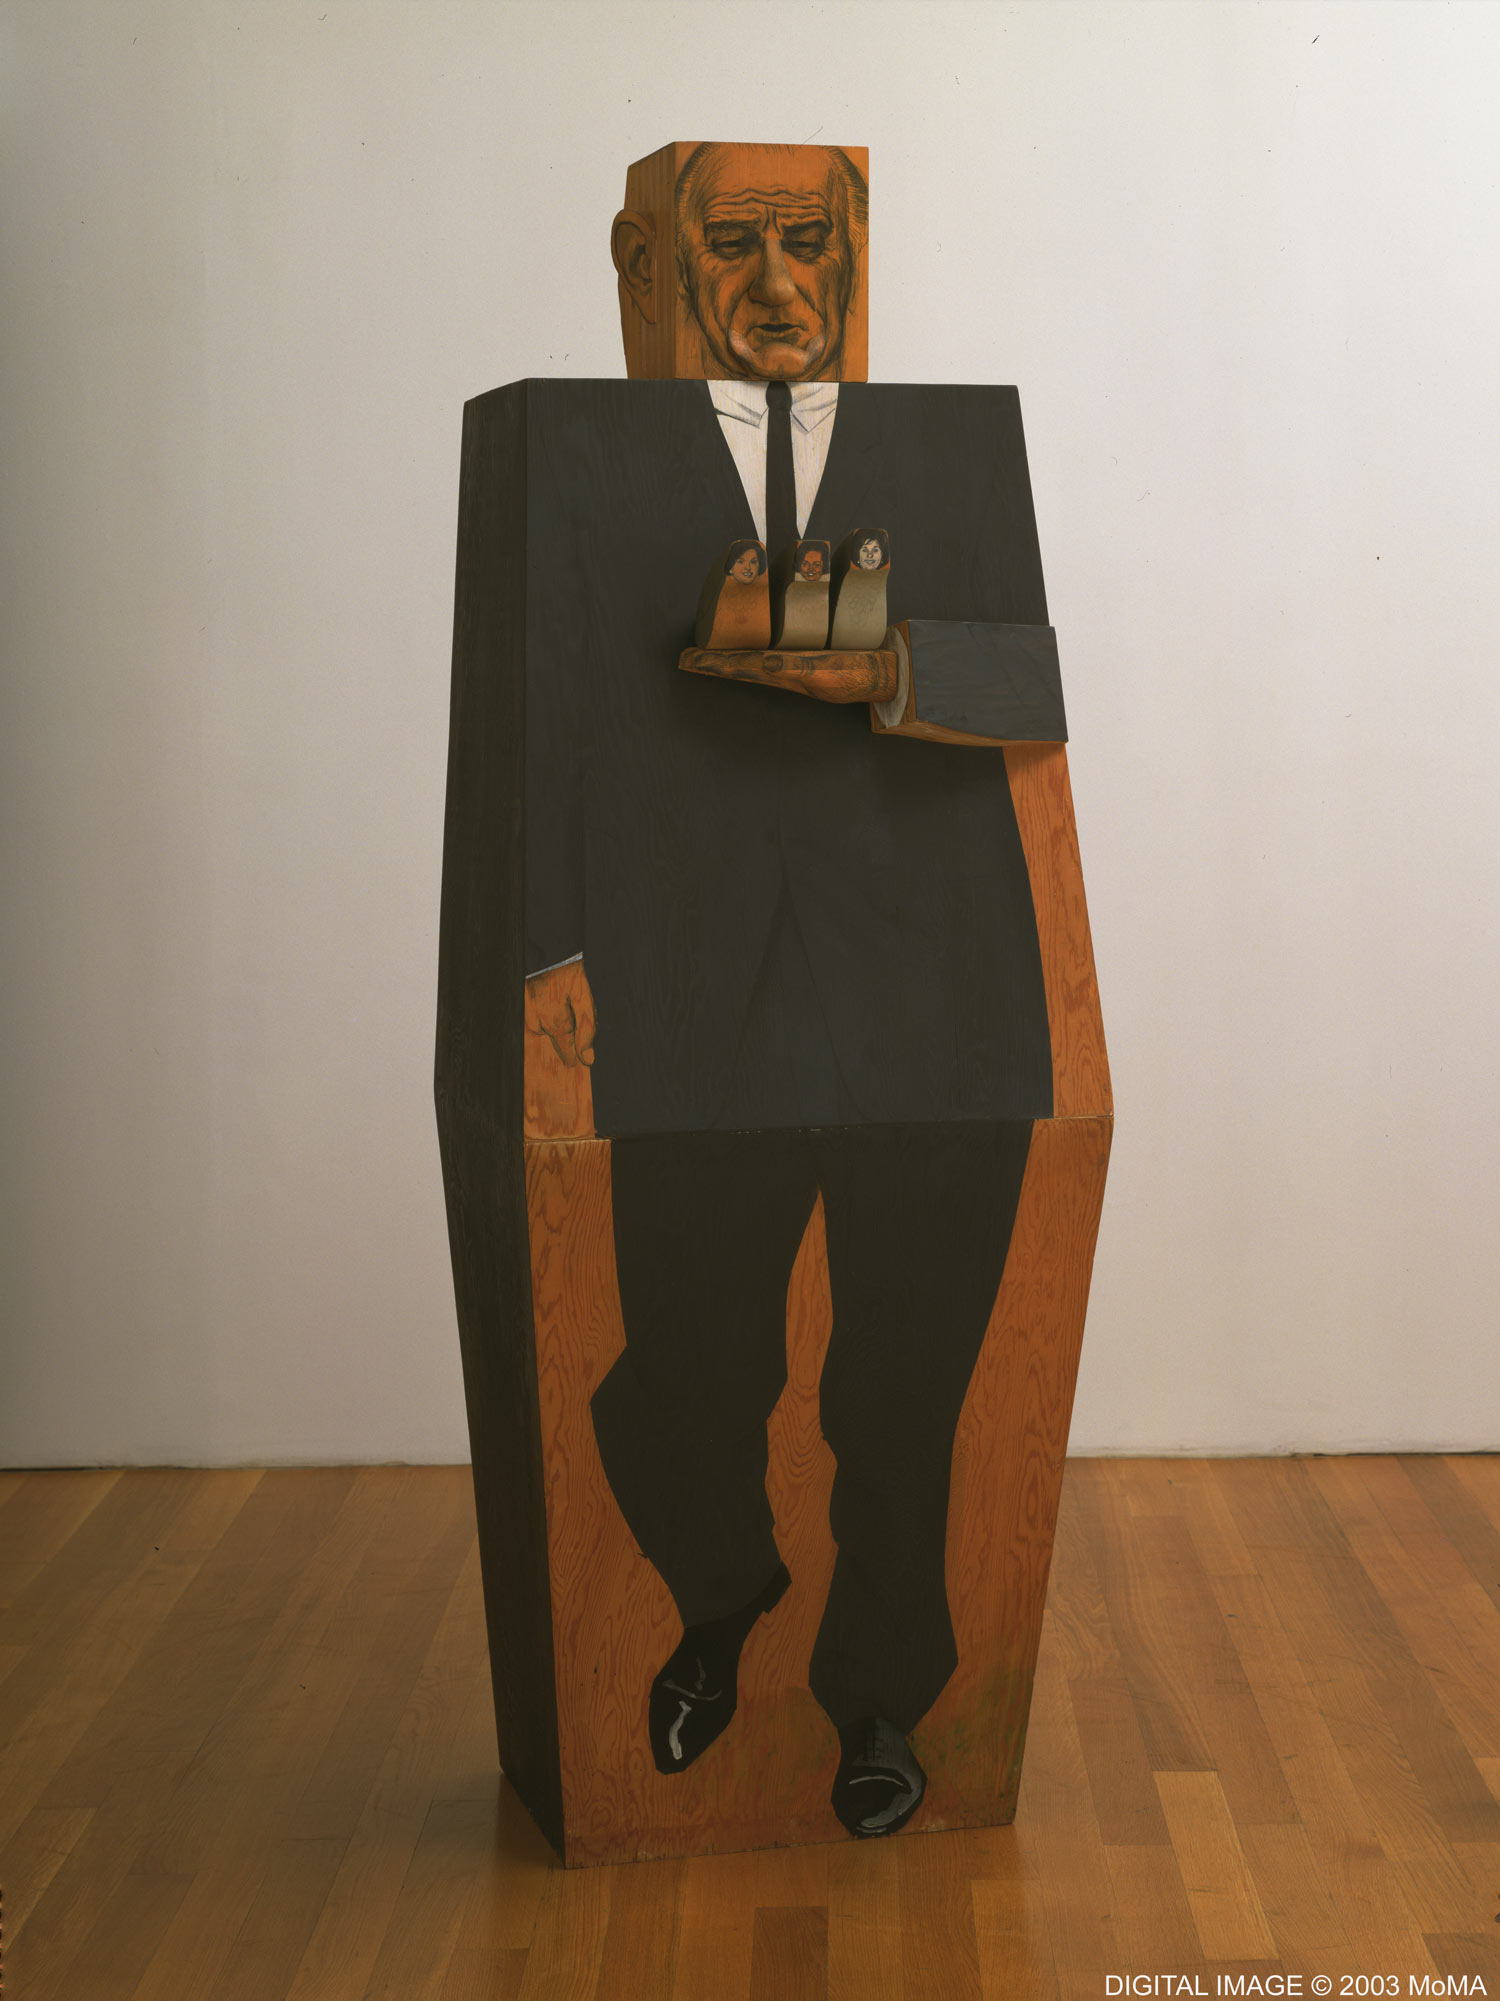 Marisol, American (b. France, 1930). LBJ, 1967. Synthetic polymer paint and pencil on wood. 80 × 27⅞ × 24⅝ inches (203.2 × 70.8 × 62.5 cm). The Museum of Modern Art, New York. Gift of Mr. and Mrs. Lester Avnet, 1968 © Marisol Escobar / Licensed by VAGA, New York